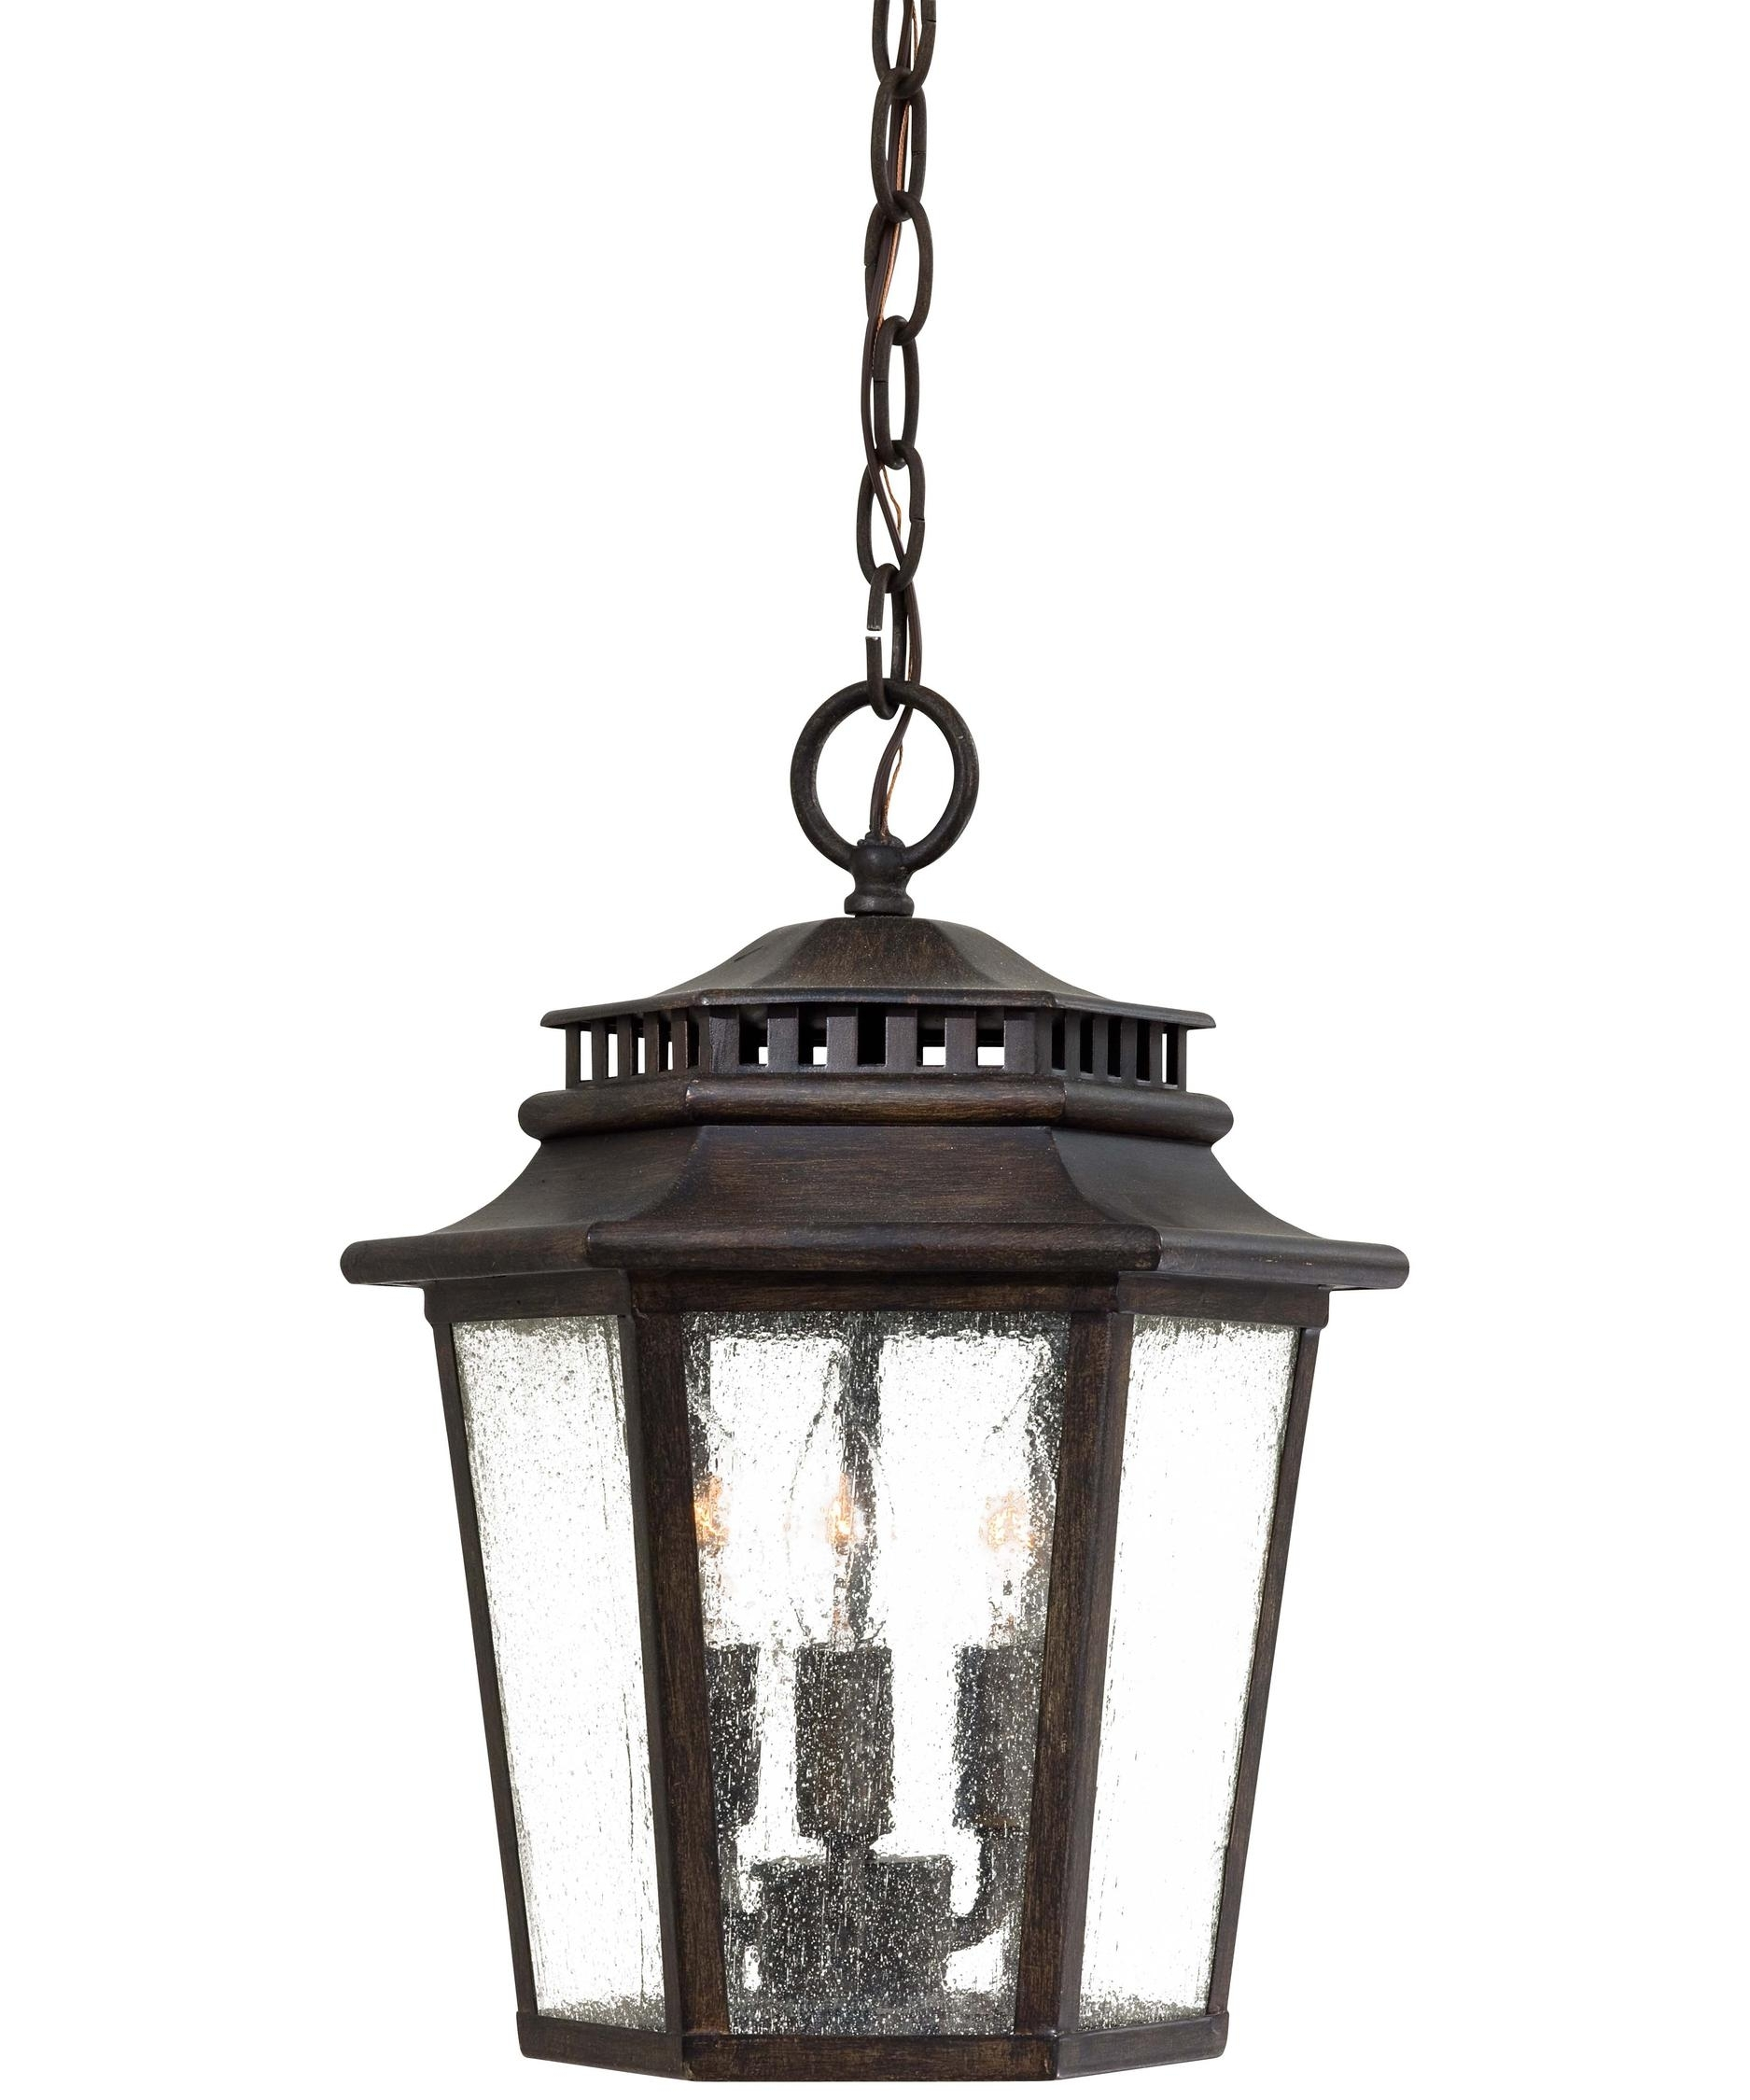 Large Hanging Outdoor Lights – Outdoor Designs With Solar Powered Outdoor Hanging Lanterns (#4 of 15)